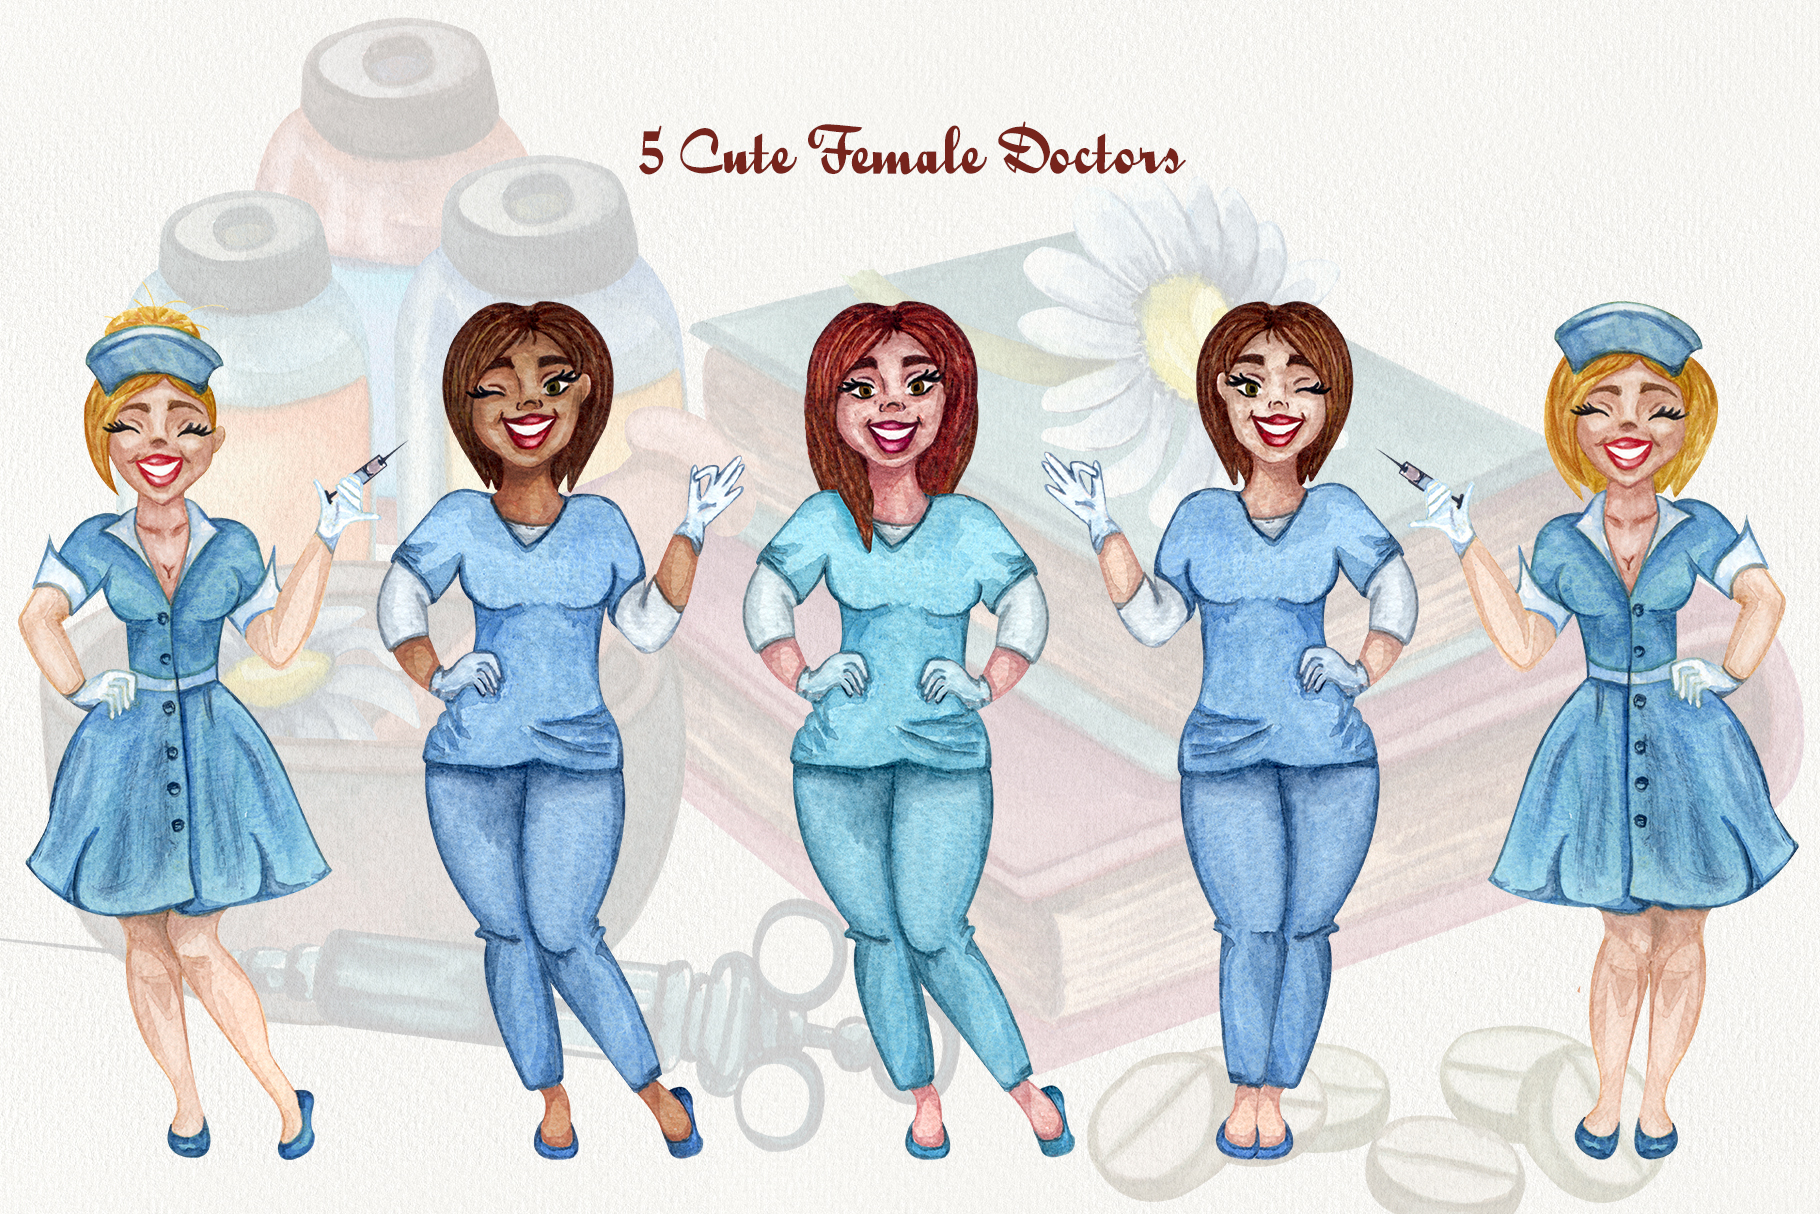 Pharmacy and Medical set example image 5